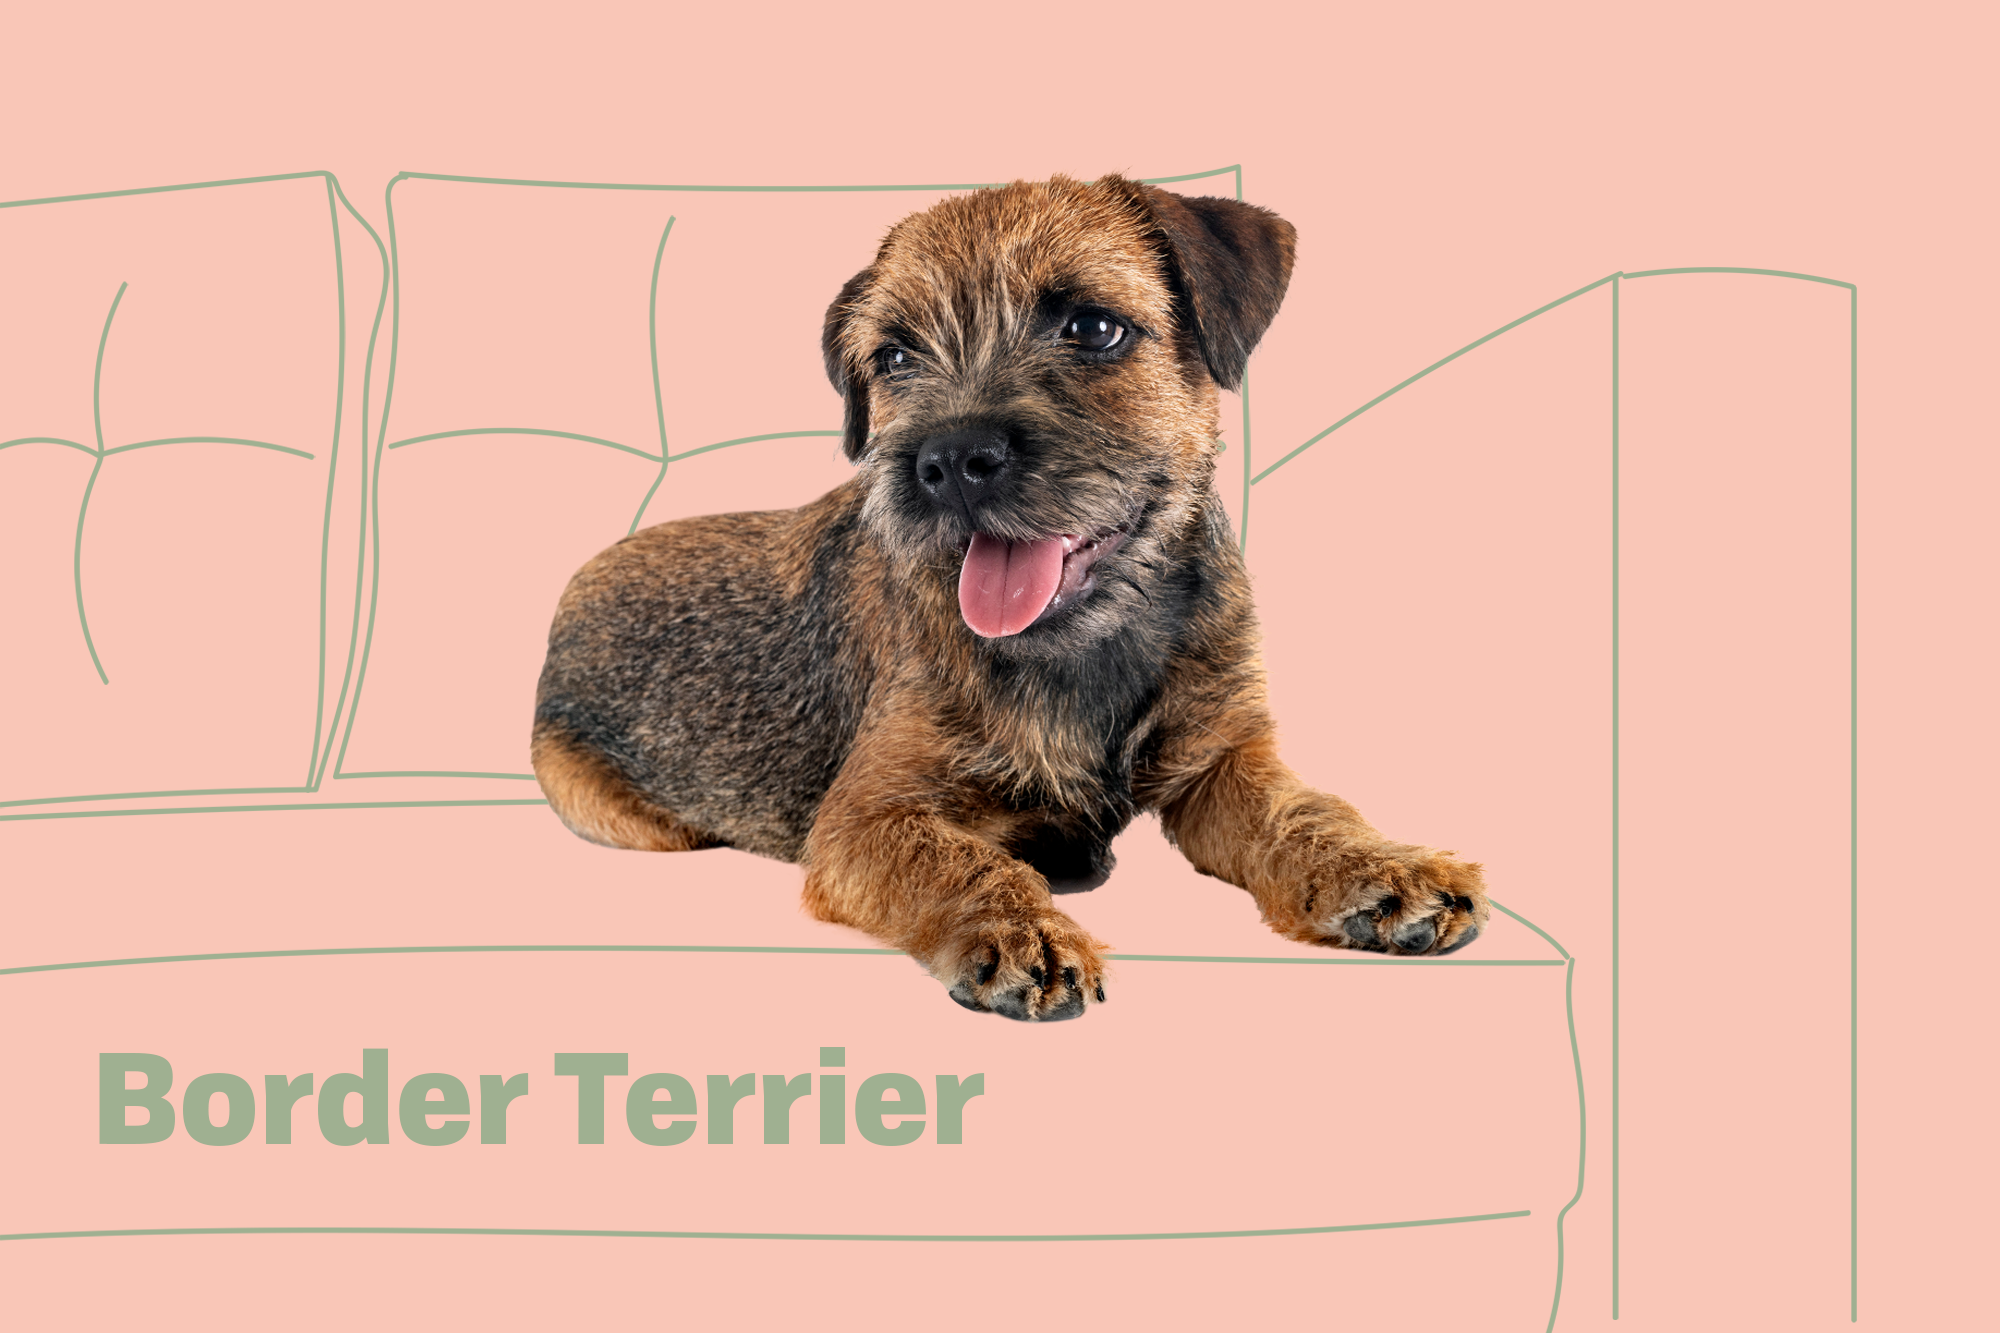 Border Terrier Breed Photo